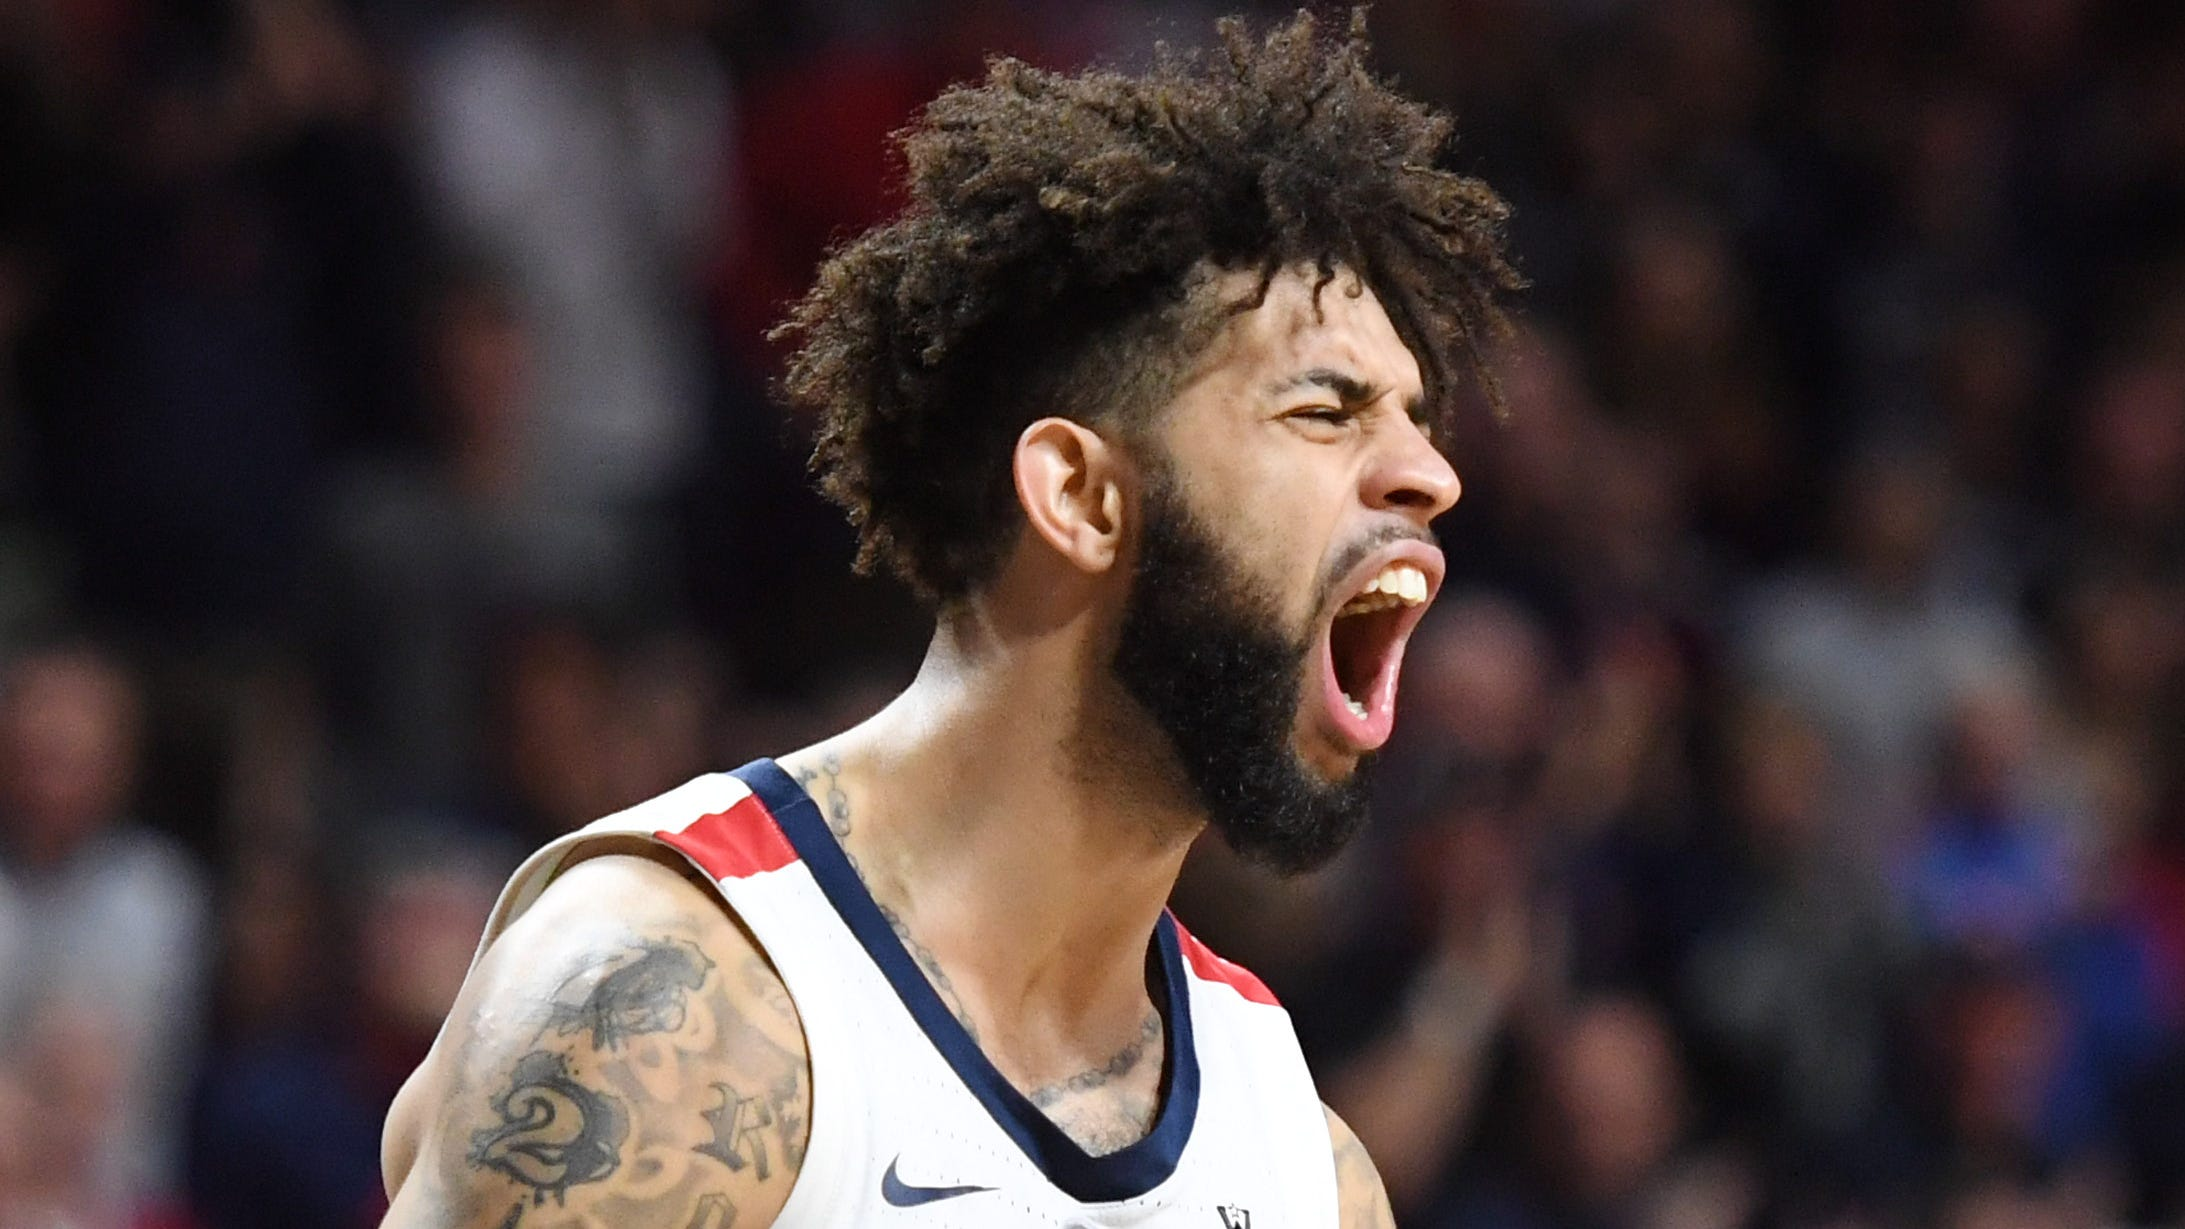 Gonzaga's Josh Perkins and the Bulldogs received a No. 1 seed in the NCAA tournament.